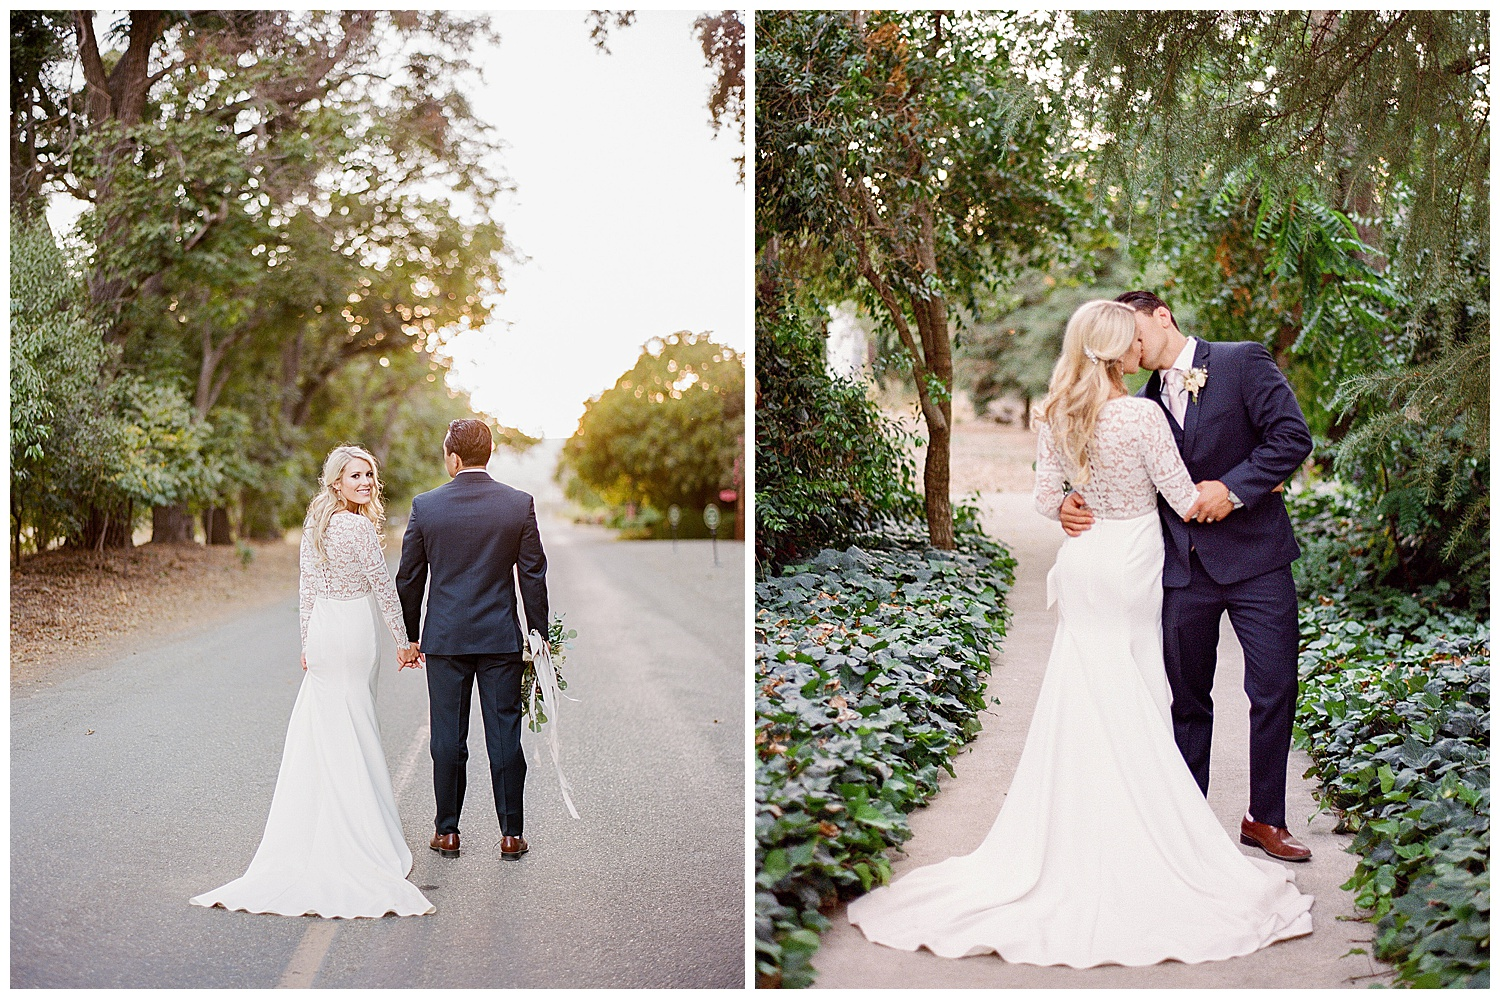 Janine_Licare_Photography_San_Francisco_Wedding_Photographer_Carneros_Tyge_Williams_Sonoma_Napa_0223.jpg